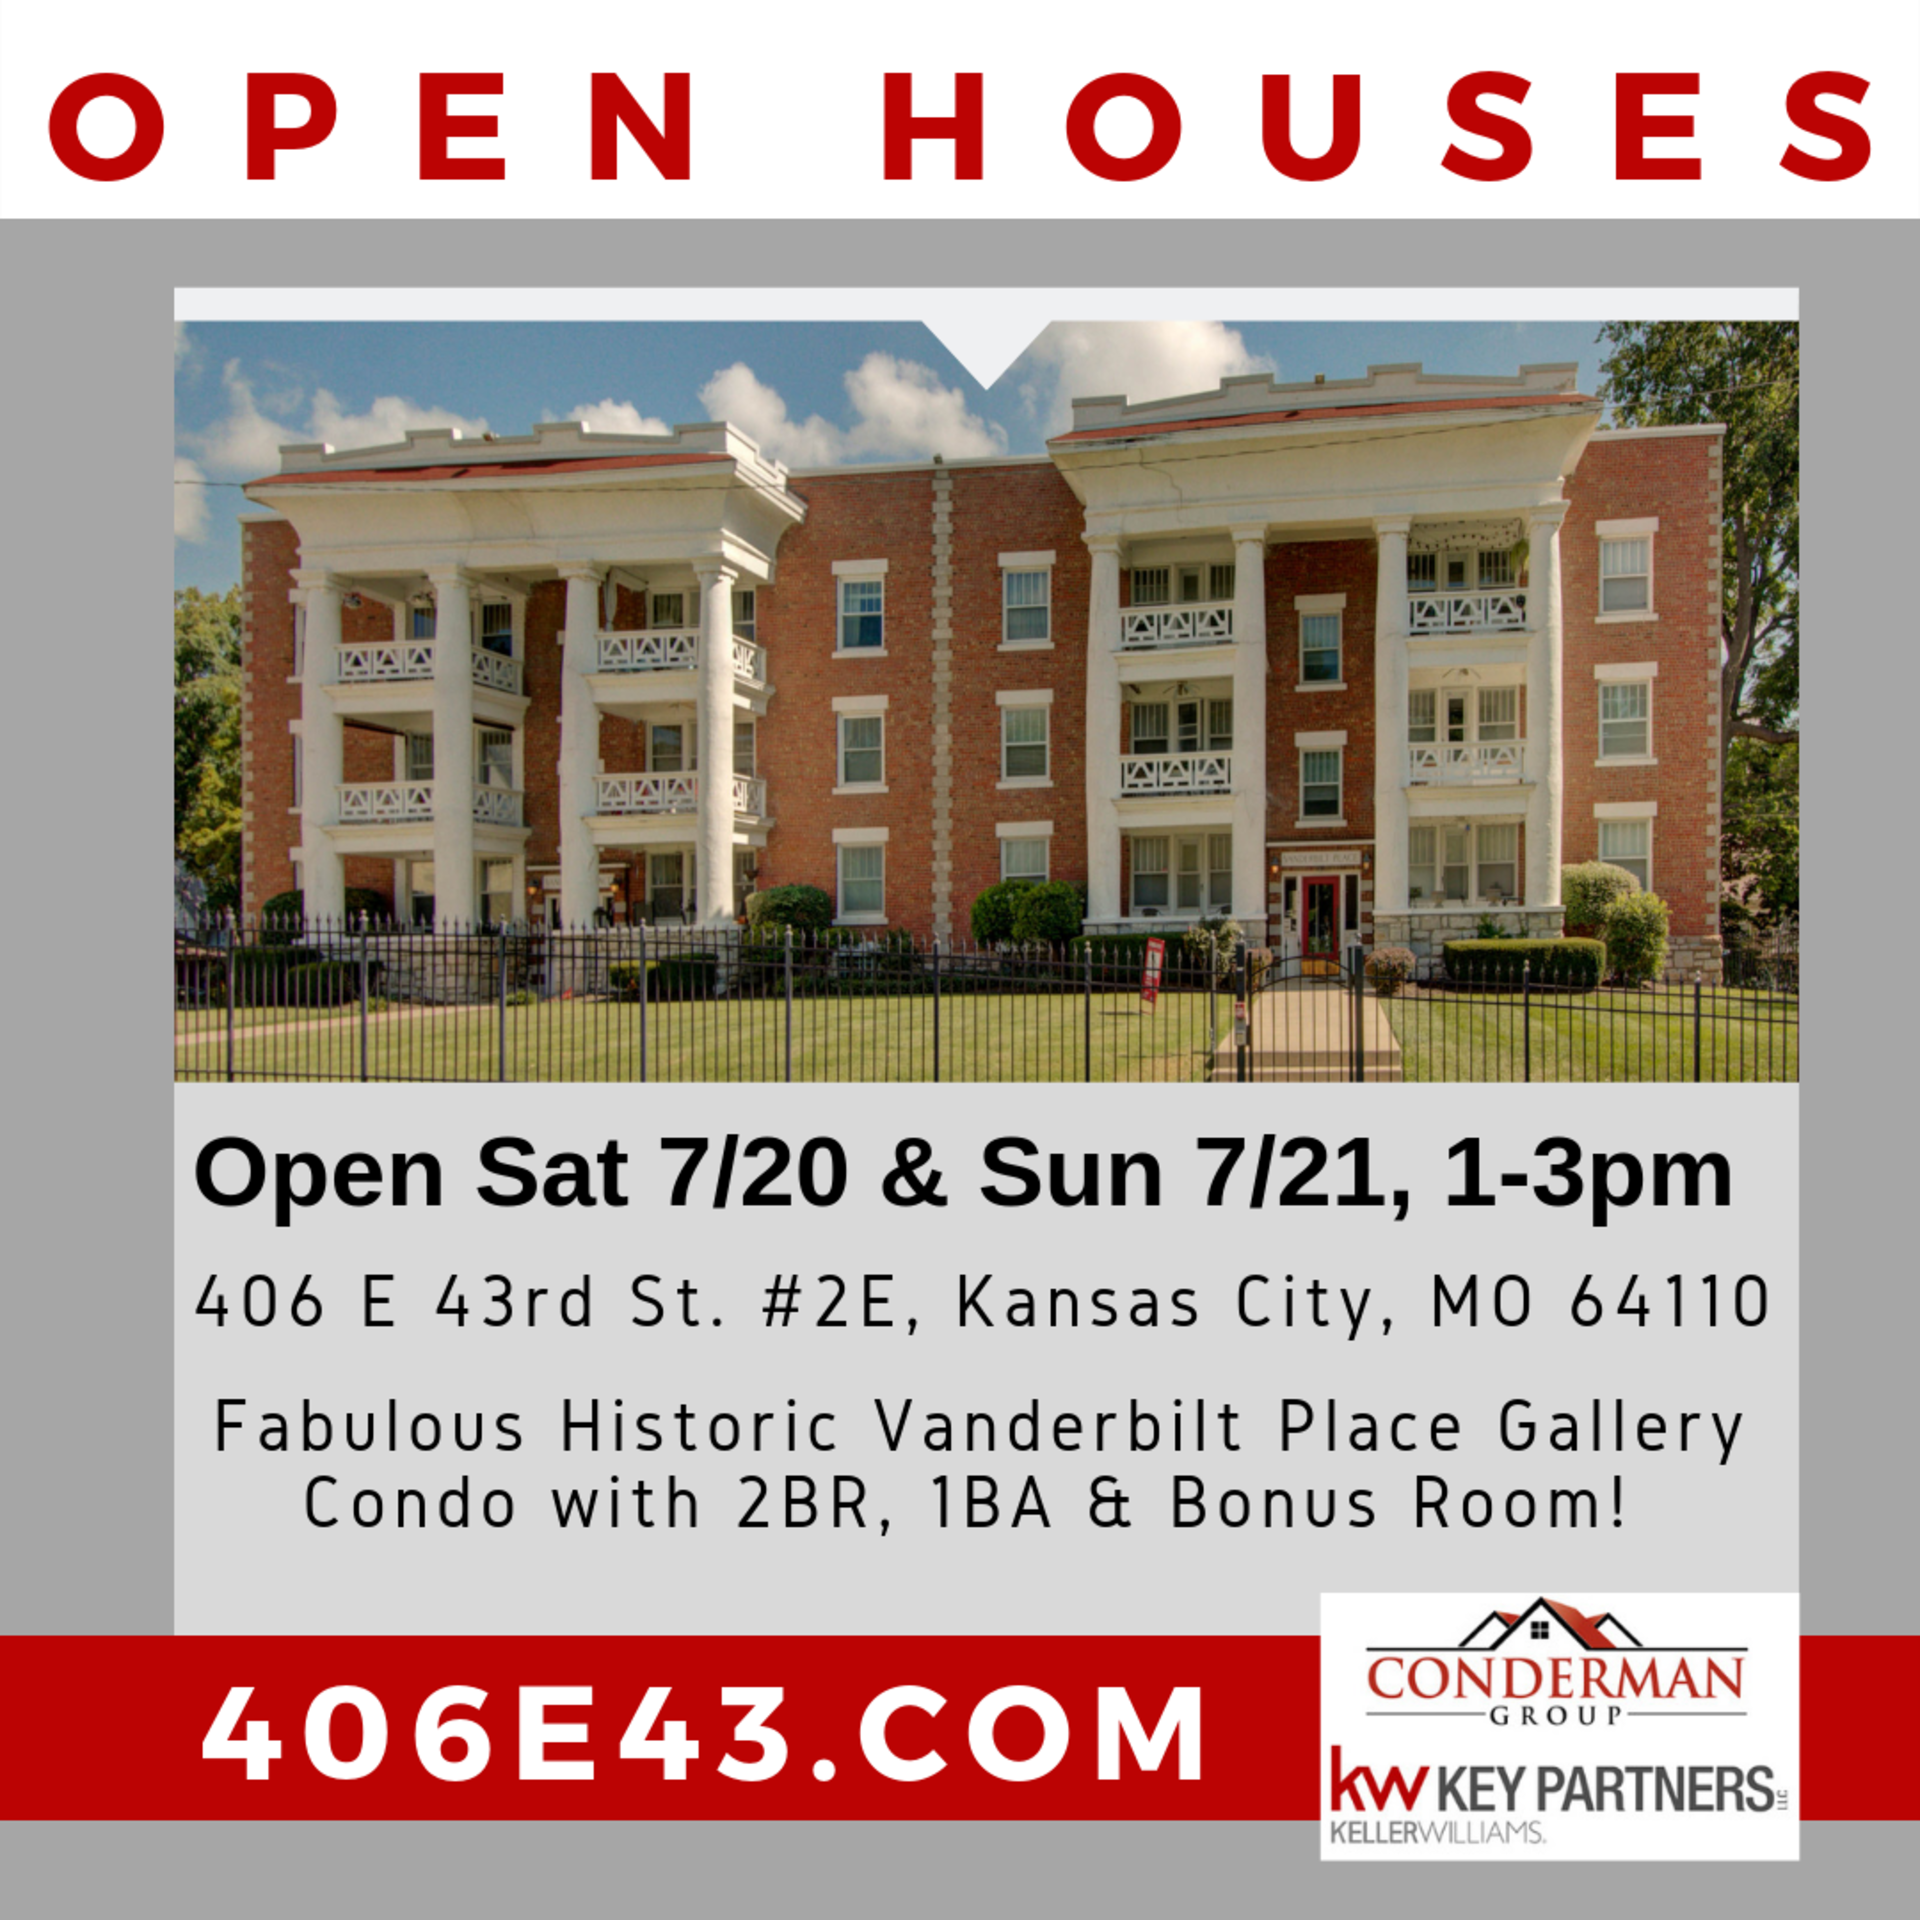 JUST LISTED with Two Public Open Houses! Vanderbilt Place Gallery Condo in KC